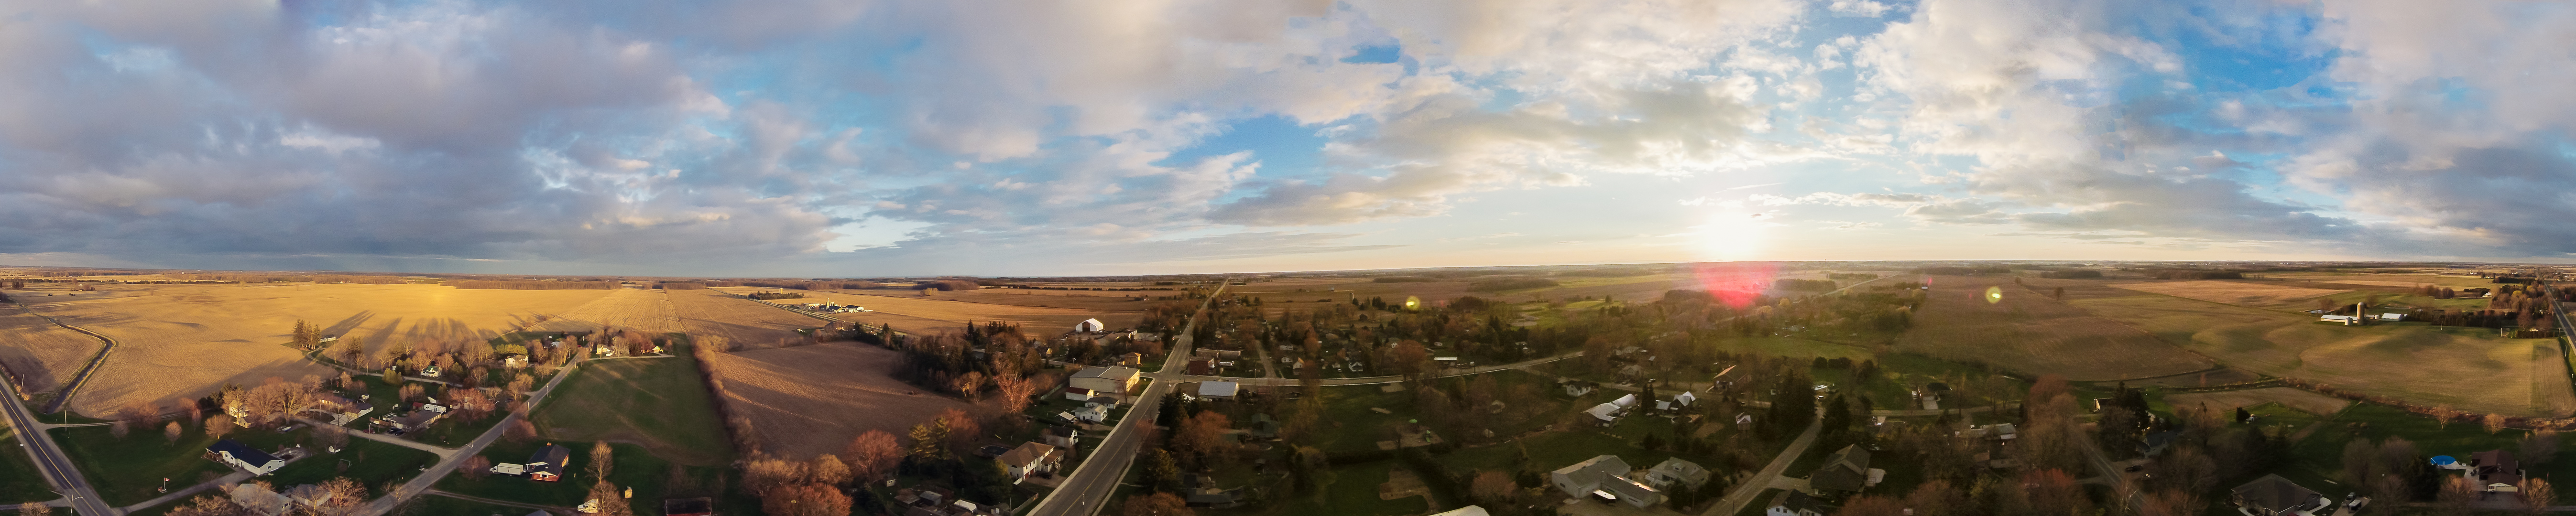 Panorama from 80 Meters